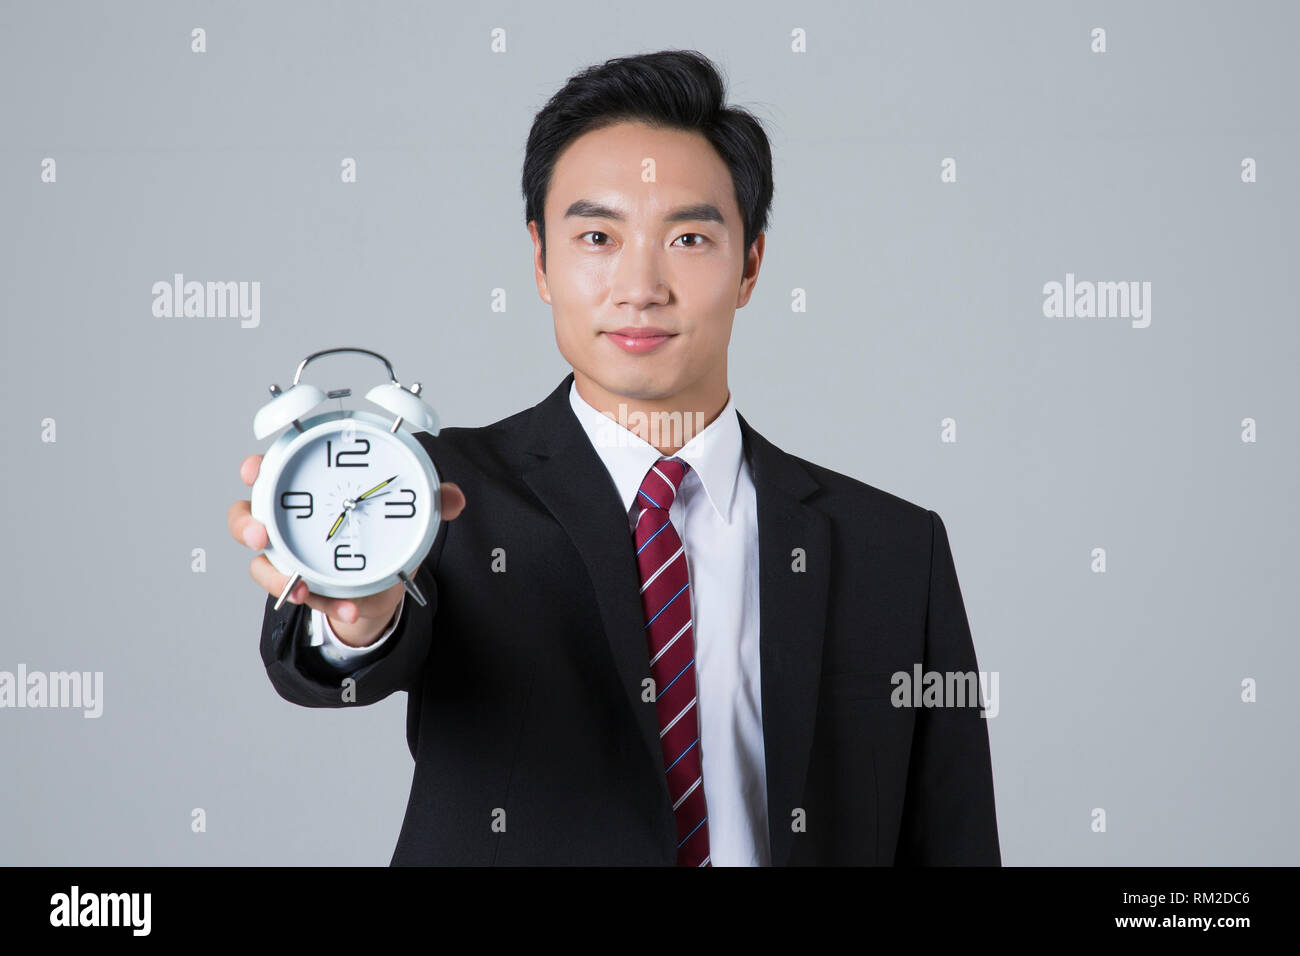 Young businessman concept photo. 066 - Stock Image